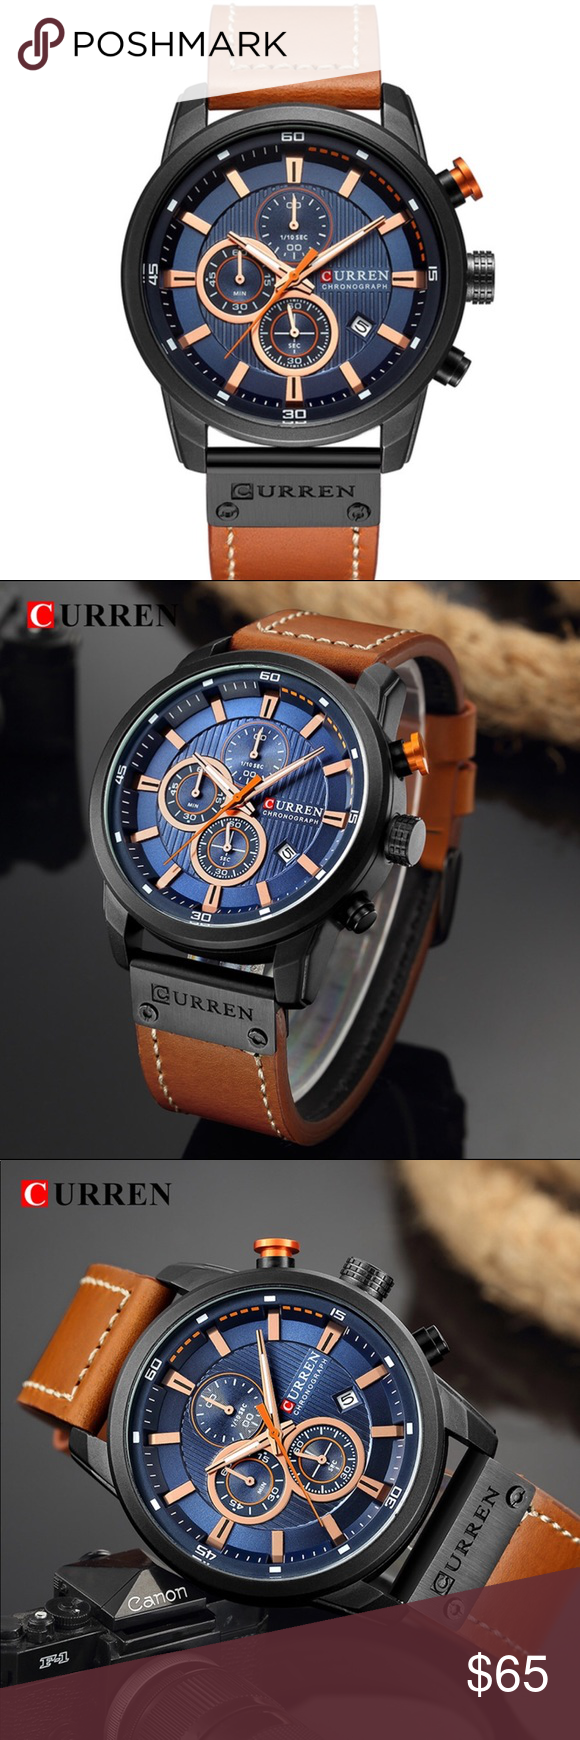 Sports Watch for Men Curren Brand Men's Sports Watch Chronograph Water Resistant (30 m) Complete Calendar  Case Material: Stainless Steel Band Material: Leather  Band Length: 23 cm (9.05 inch) Dial Diameter: 45 mm (1.77 inch) Band Width: 22 mm (0.86 inch) Curren Accessories Watches #sportswatches